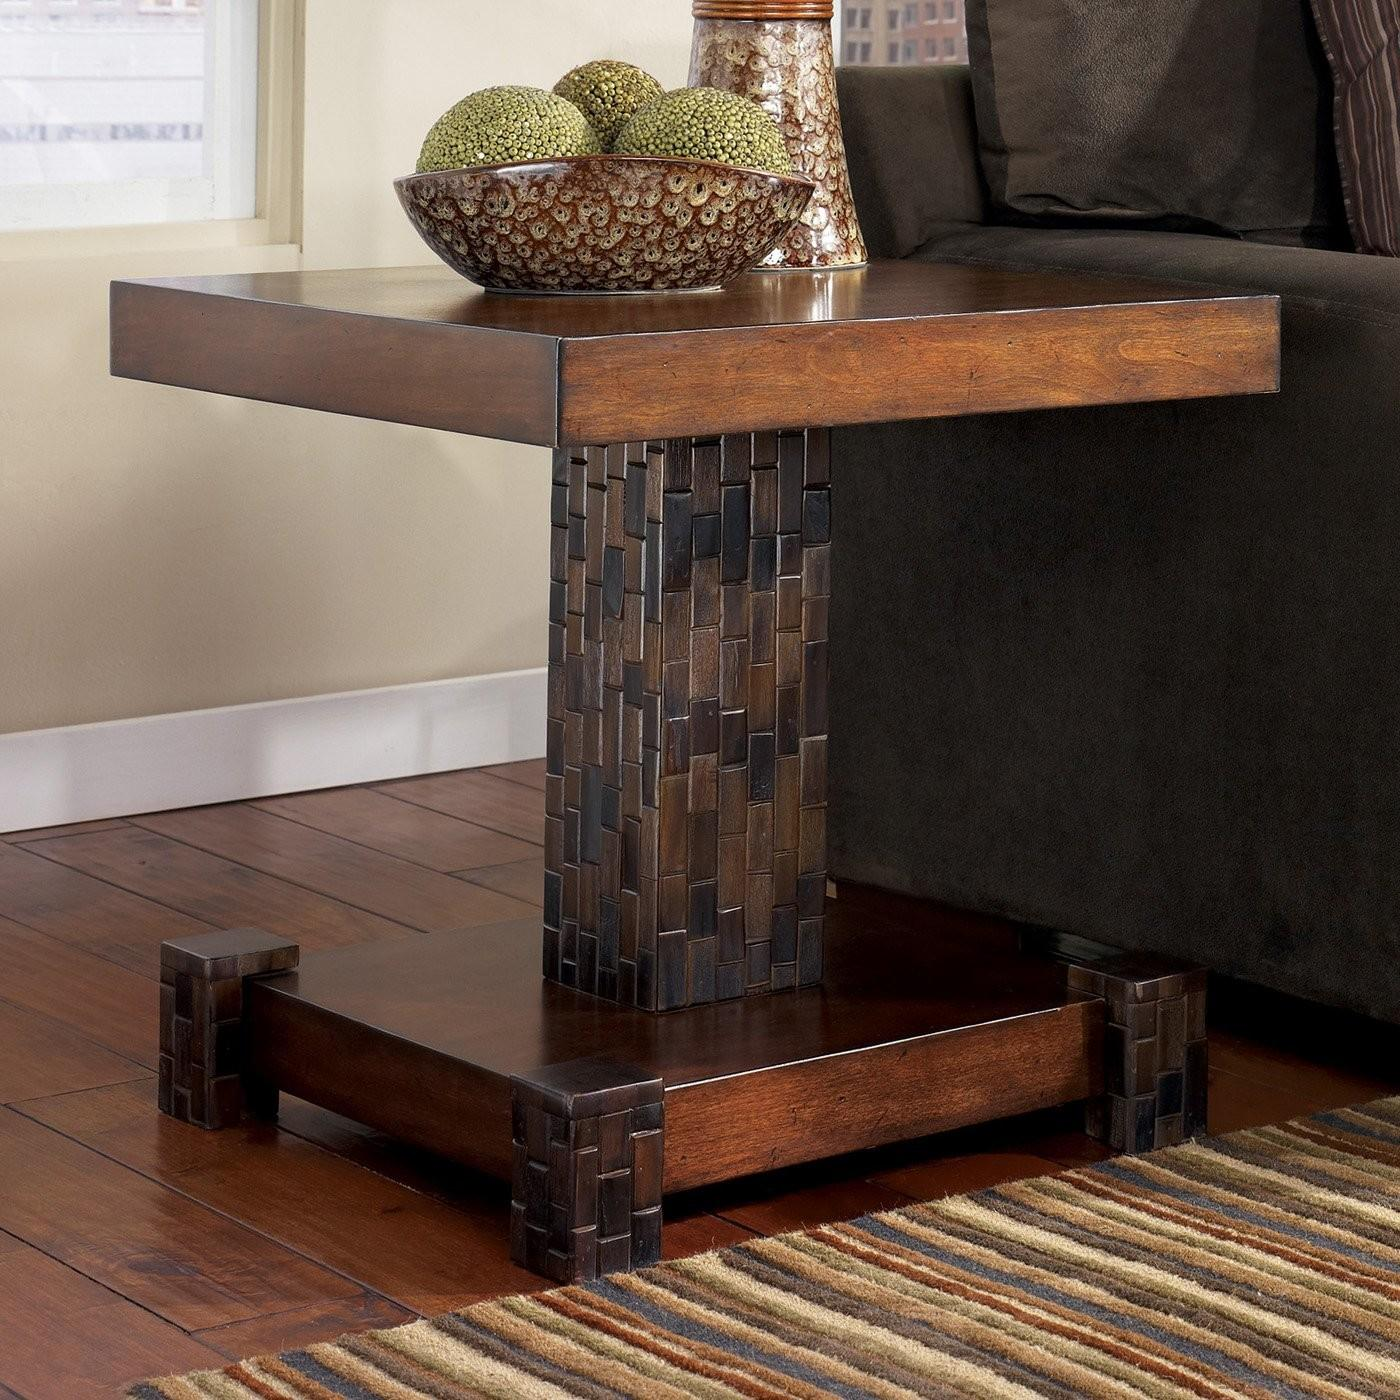 Fascinating Reclaimed Wooden Single Stand Entryway Table